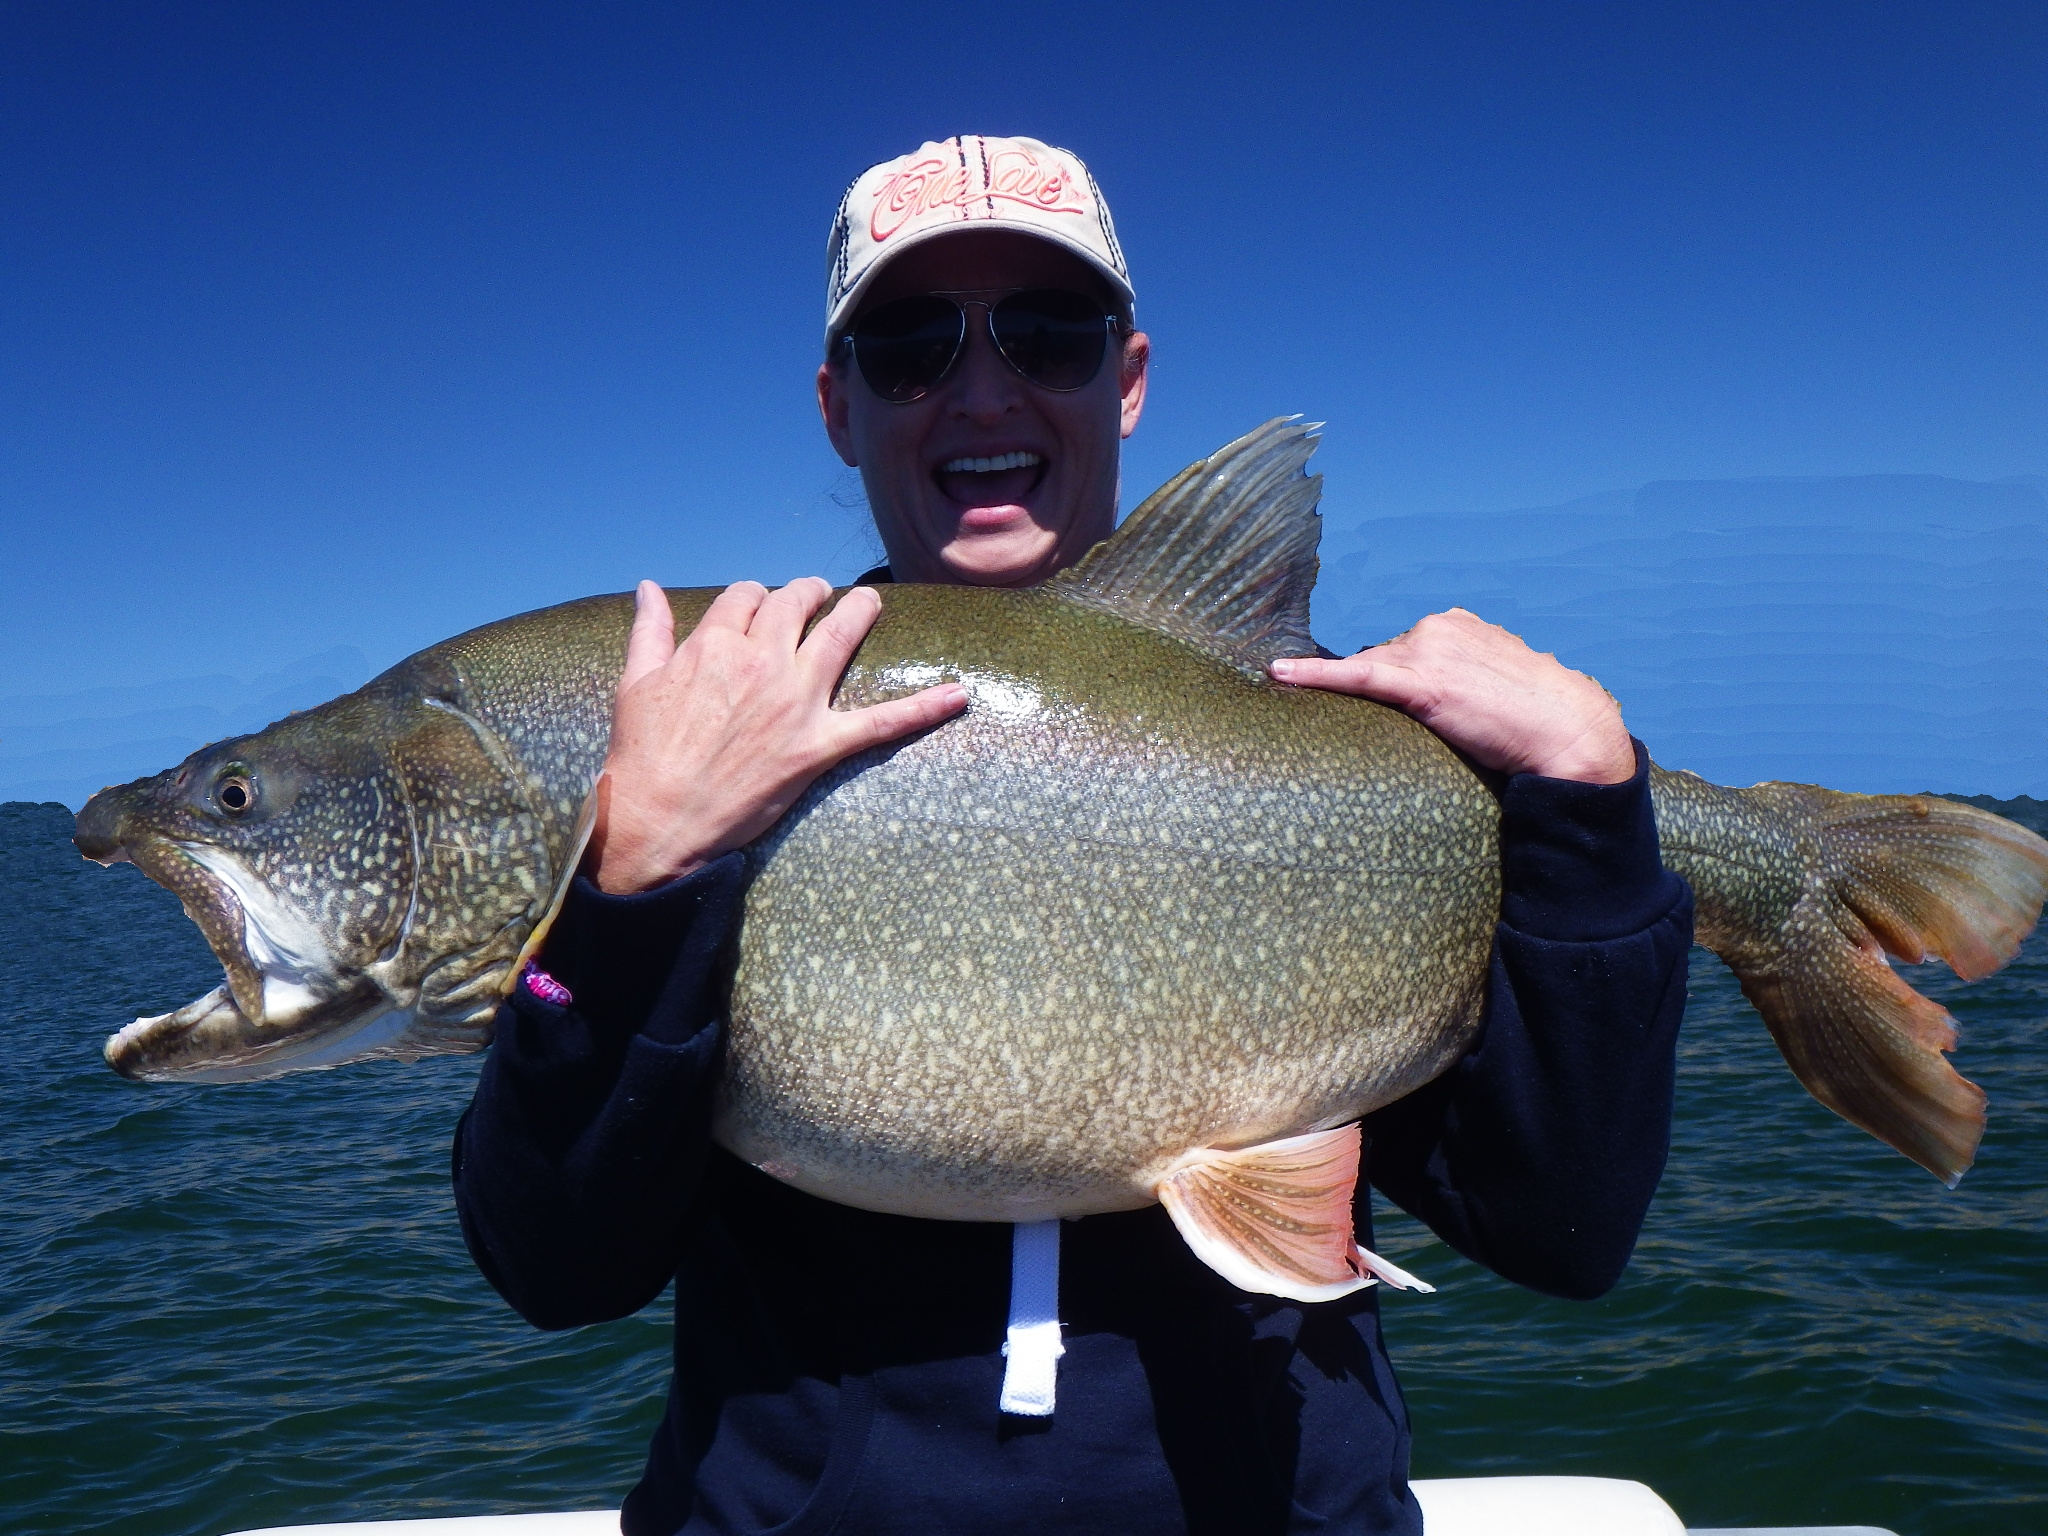 Creative fishing adventures flaming gorge fishing guide for Mackinaw city fishing charters